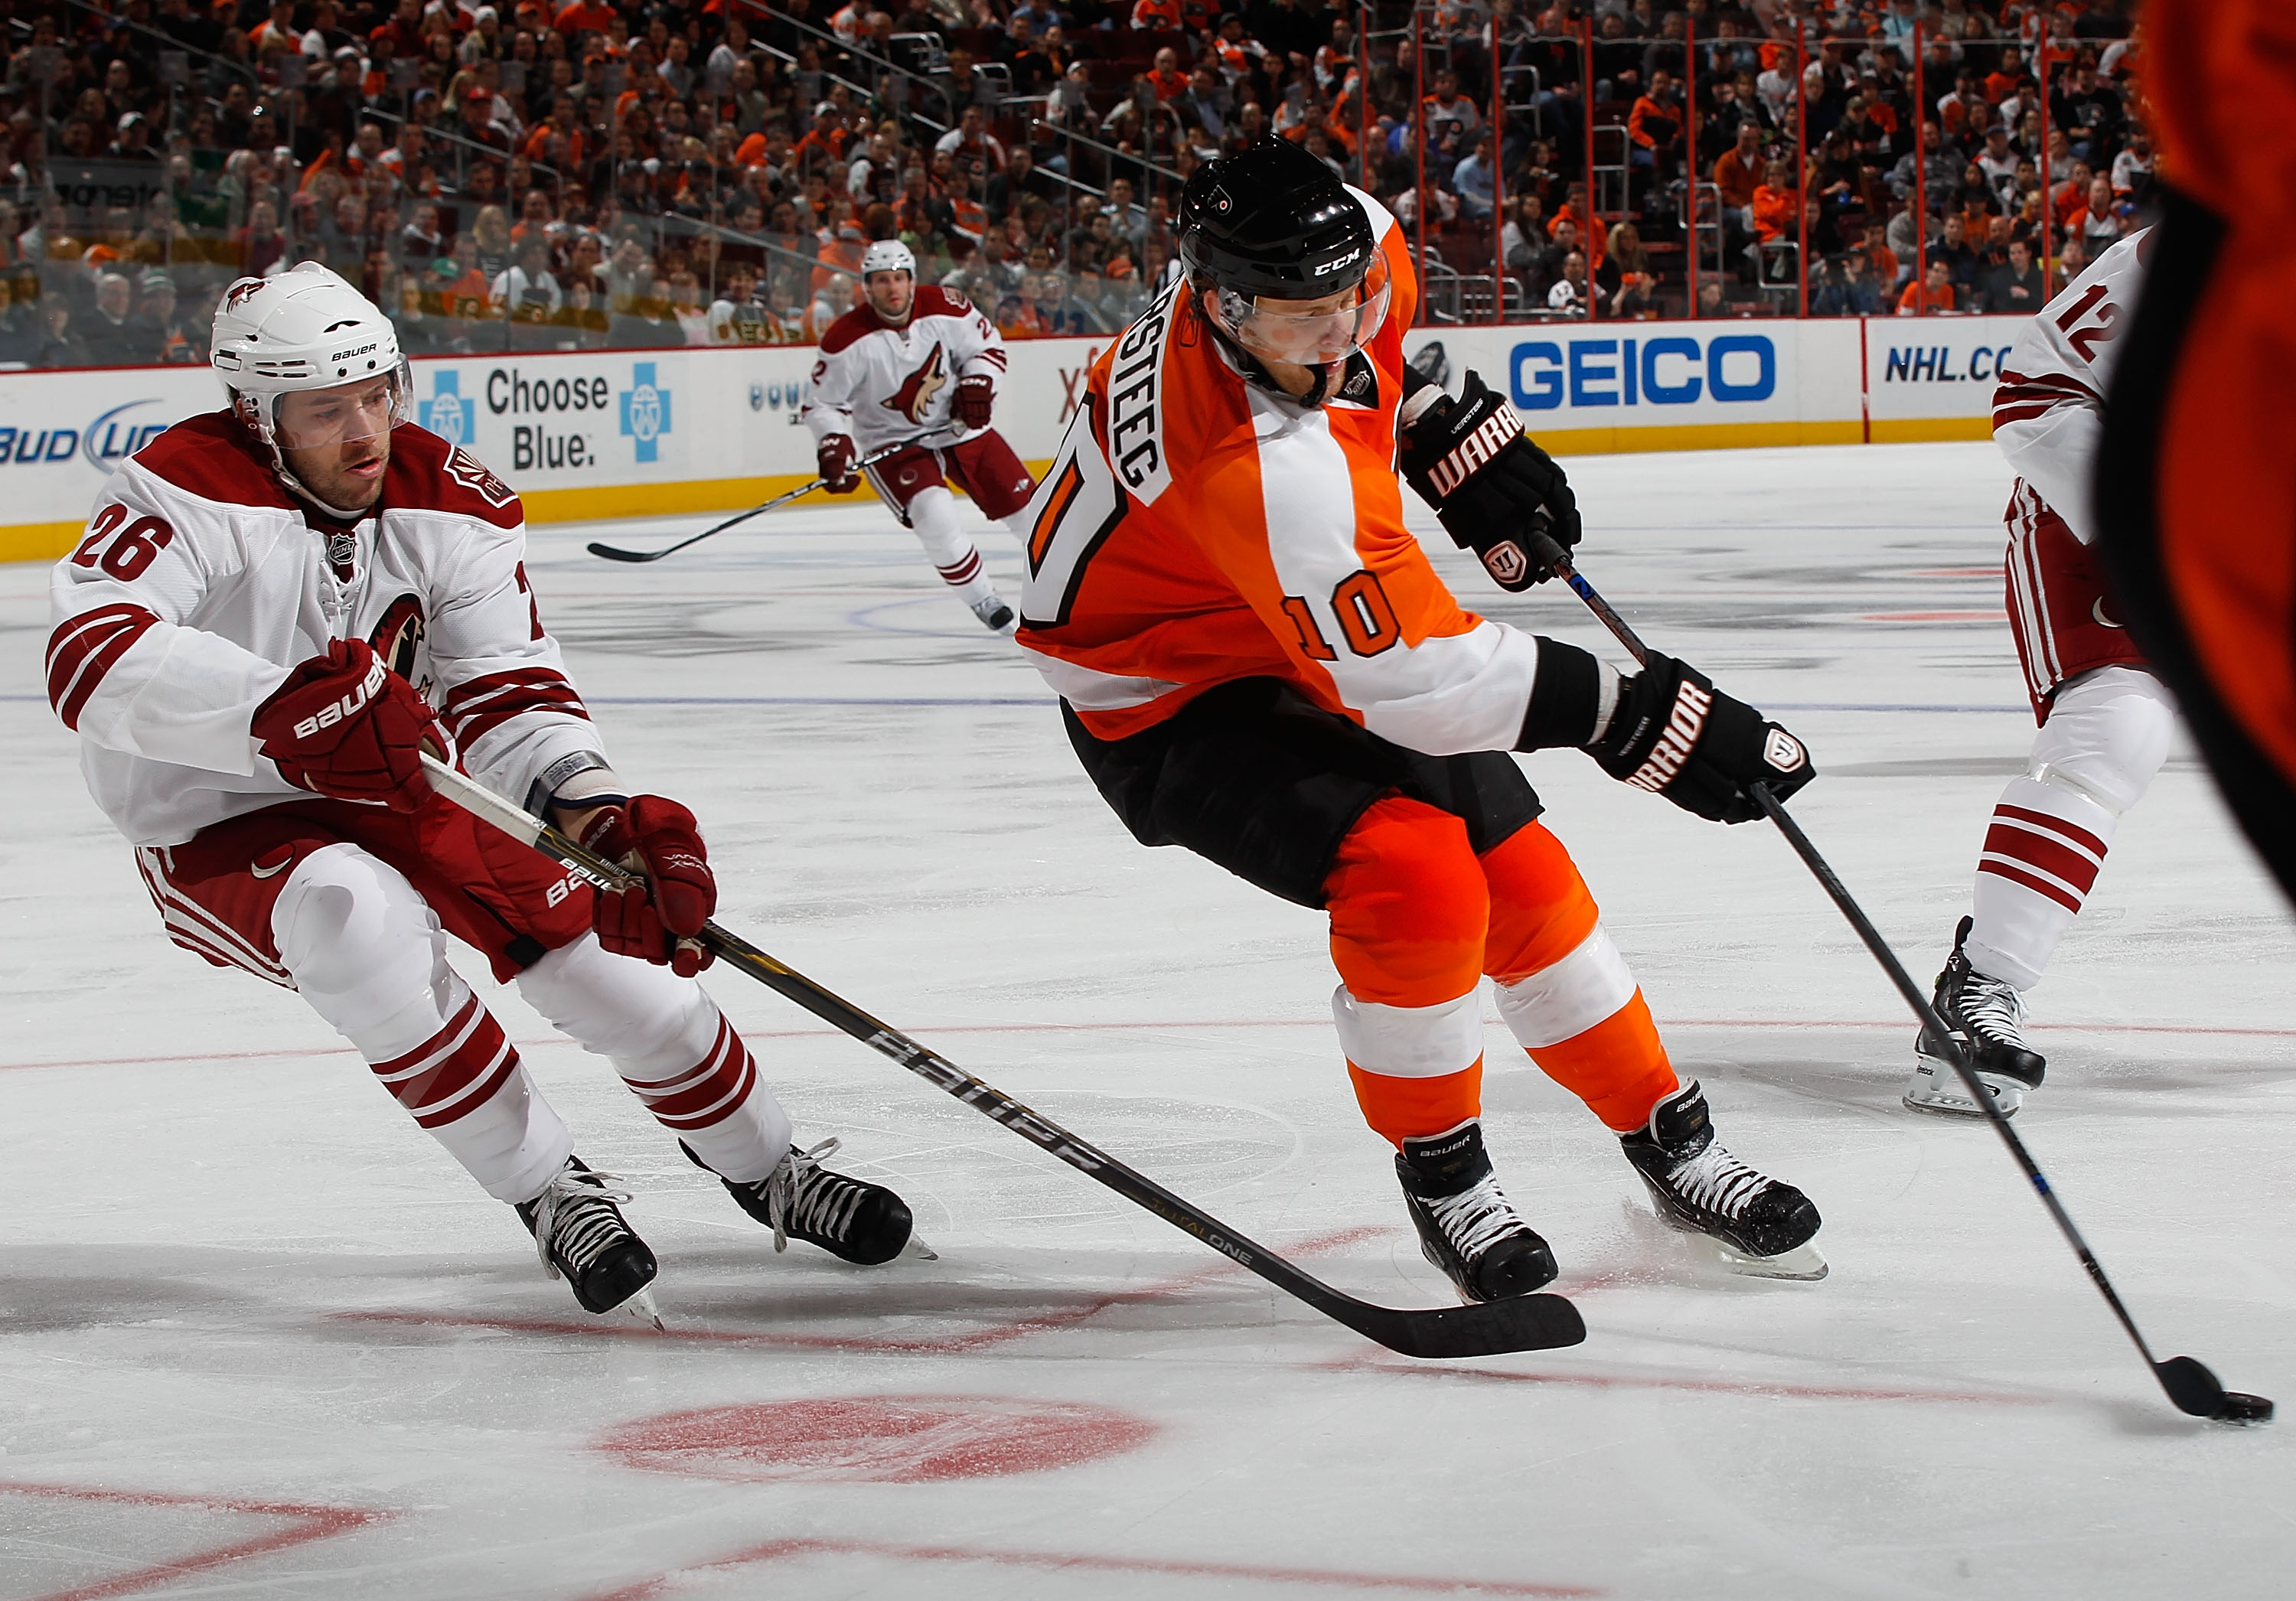 PHILADELPHIA - FEBRUARY 22:   Kris Versteeg #10 of the Philadelphia Flyers plays the puck in front of Andrew Ebbett #26 of the Phoenix Coyotes on February 22, 2011 at the Wells Fargo Center in Philadelphia, Pennsylvania. Coyotes defeat the Flyers 3-2 in O